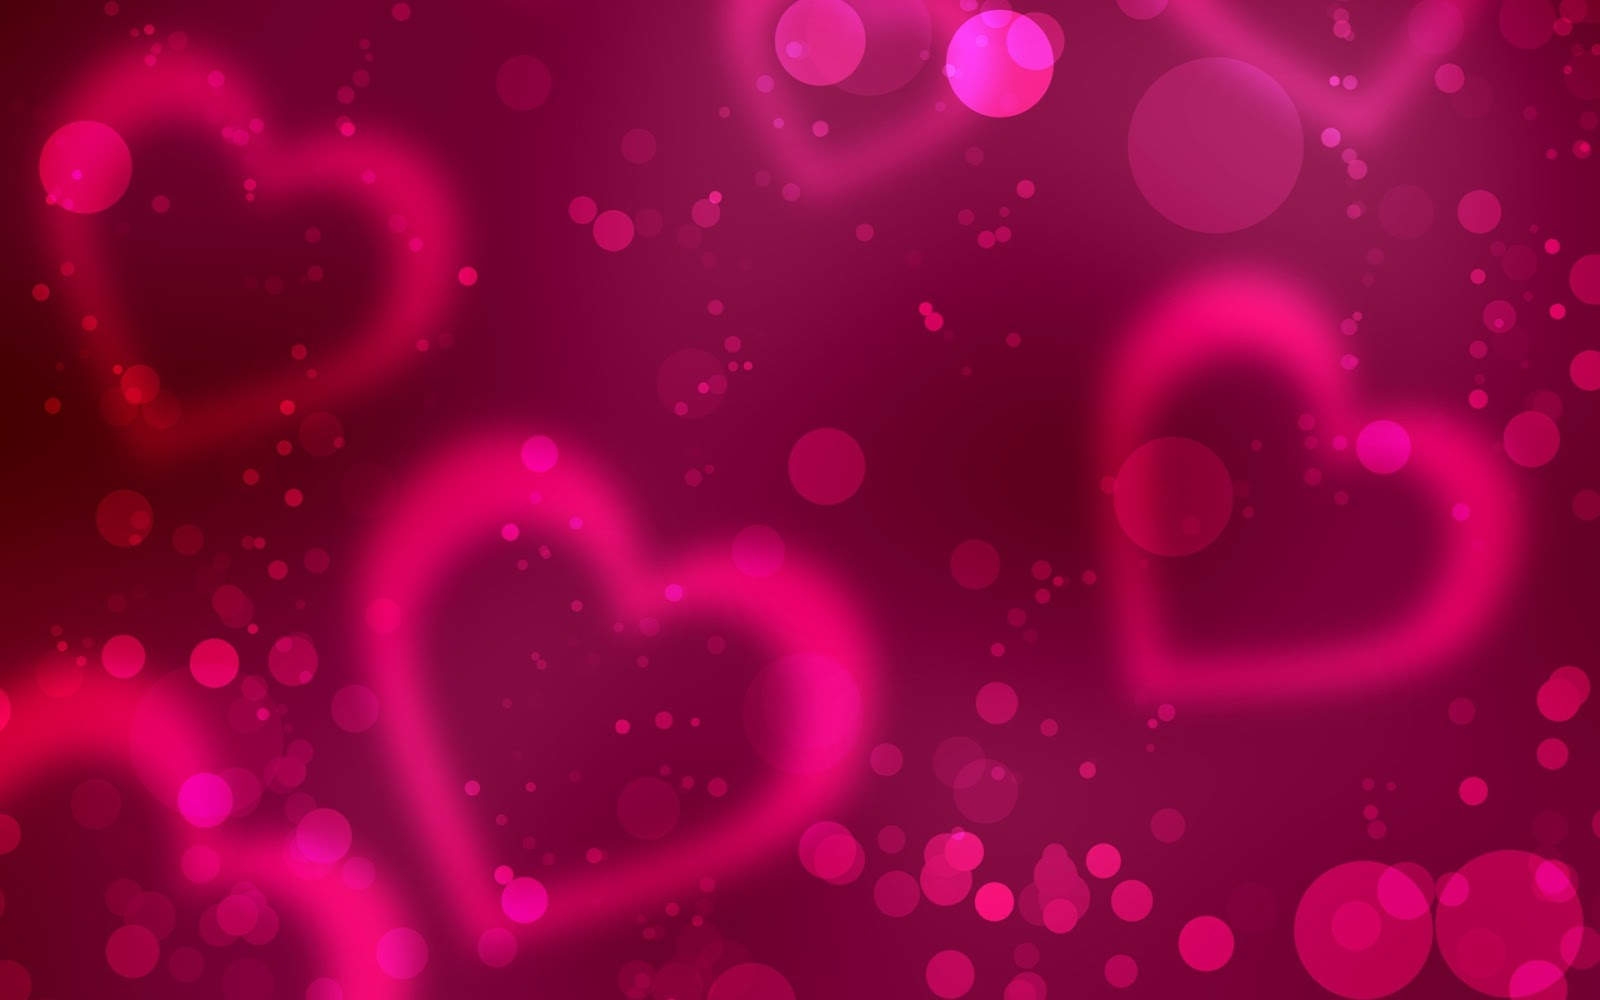 Love Wallpaper New 2014 : Love Wallpaper Backgrounds 19152 1600x1000 px ...